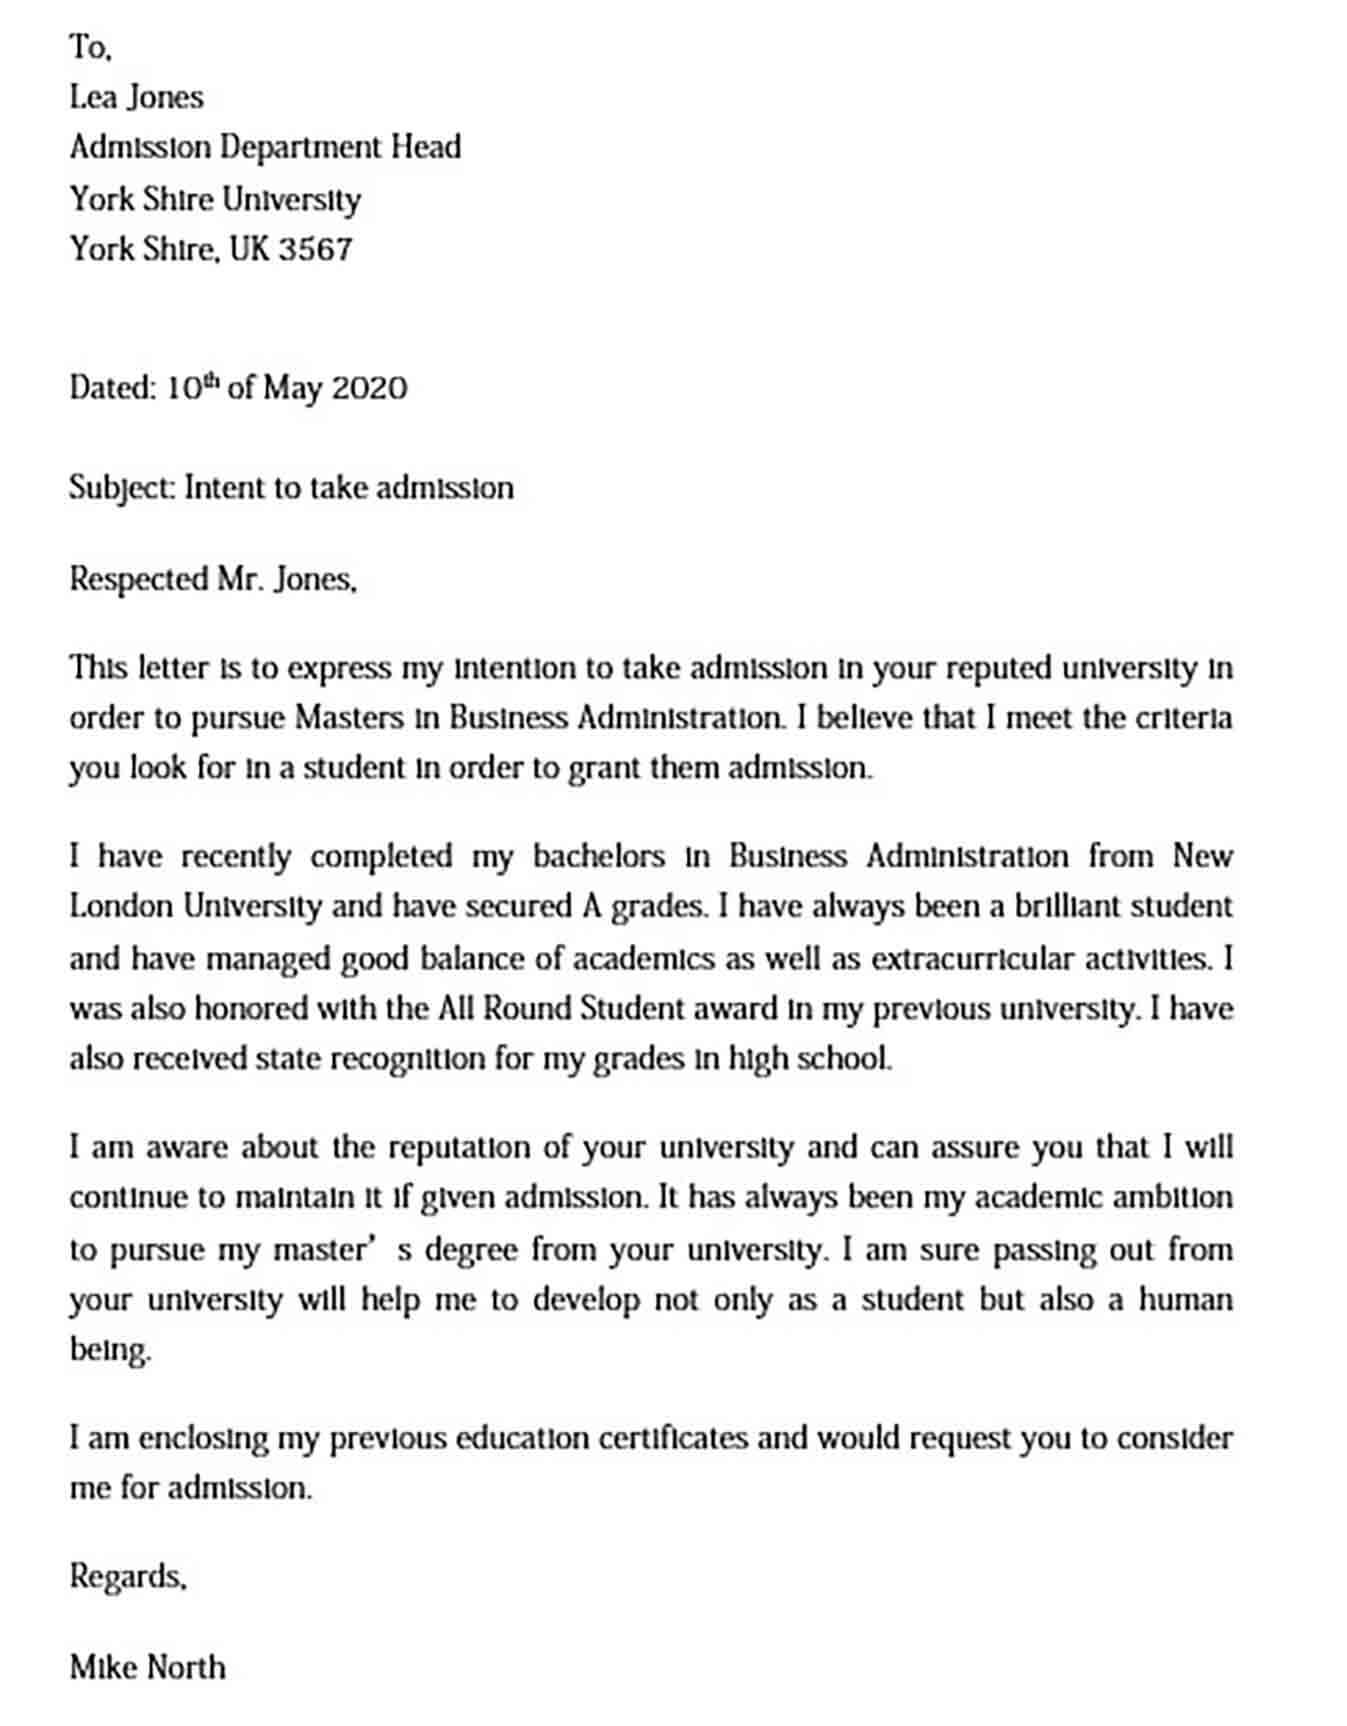 Academic Letter of Intent